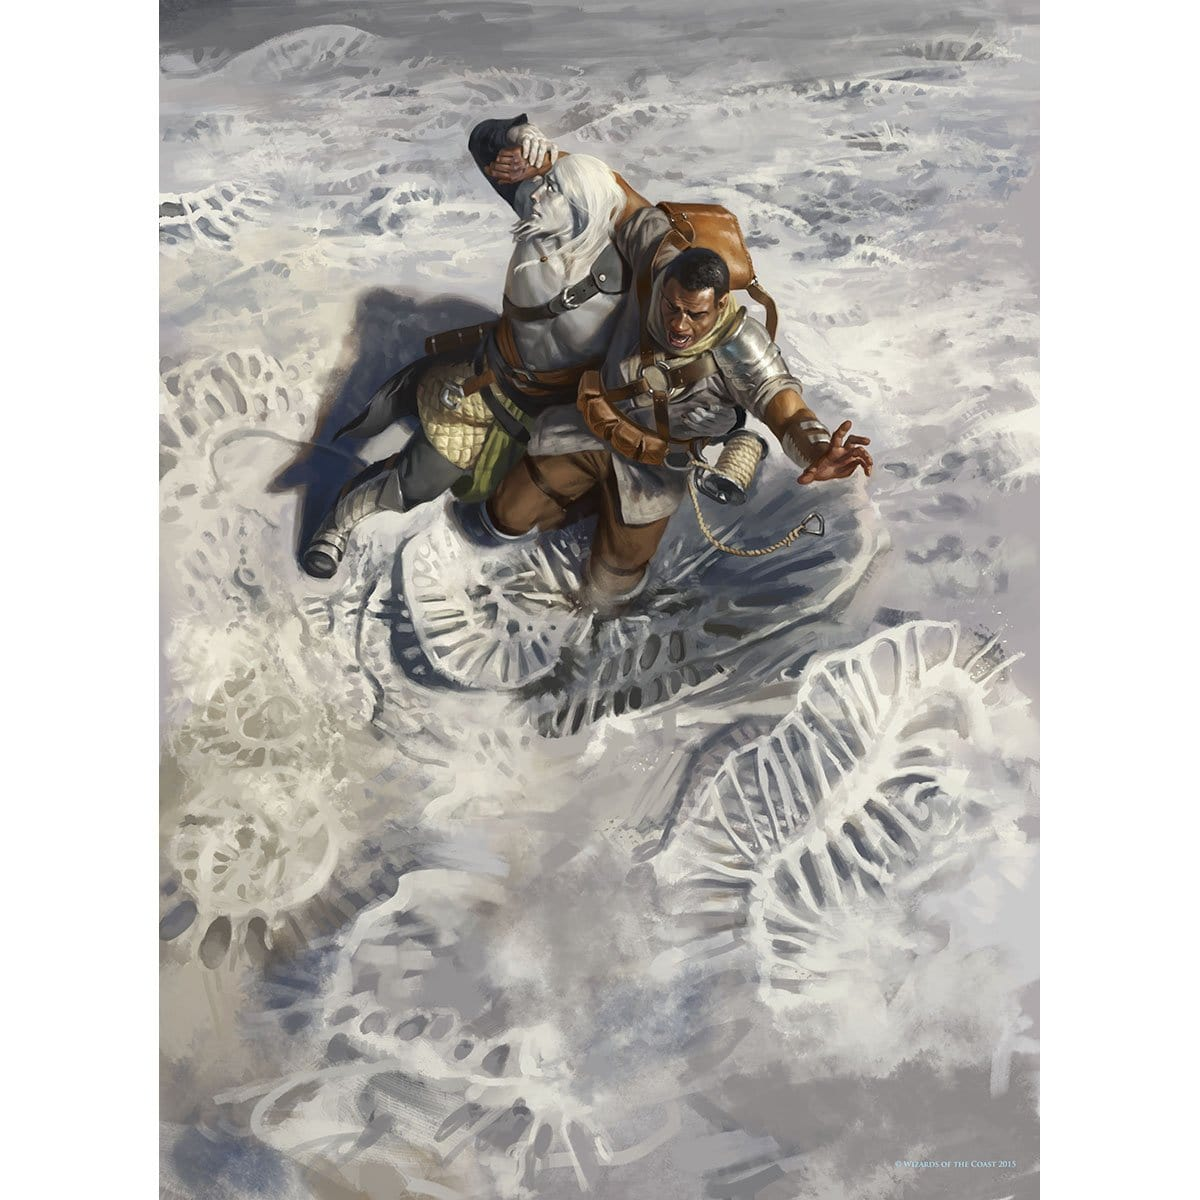 Adverse Conditions Print - Print - Original Magic Art - Accessories for Magic the Gathering and other card games